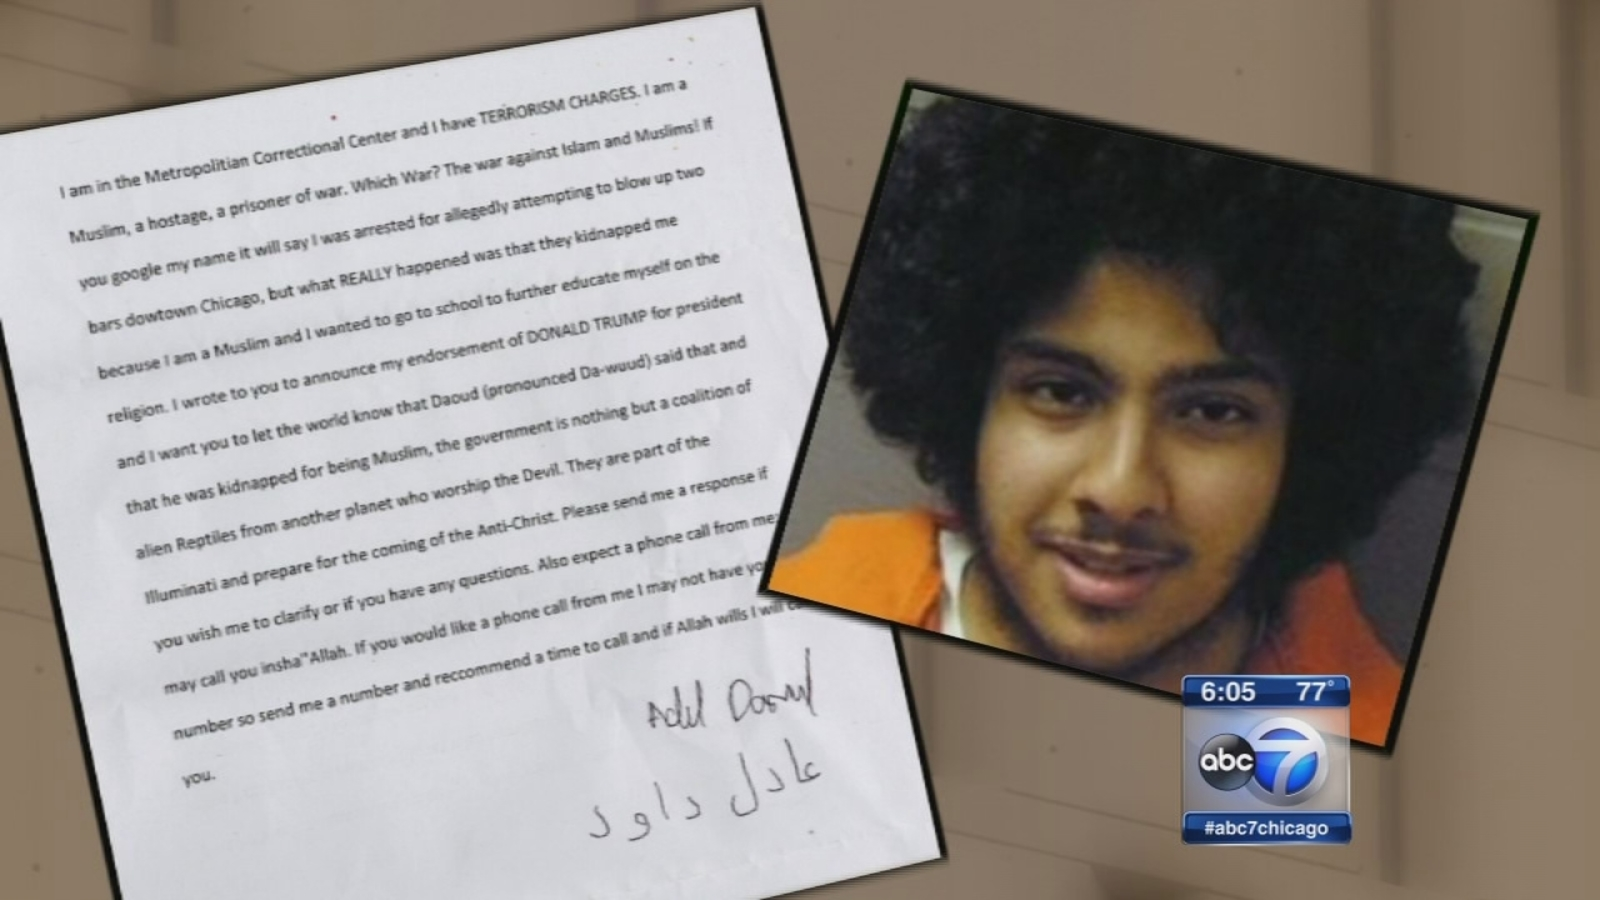 Chicago judge finds terrorism suspect unfit to go to trial